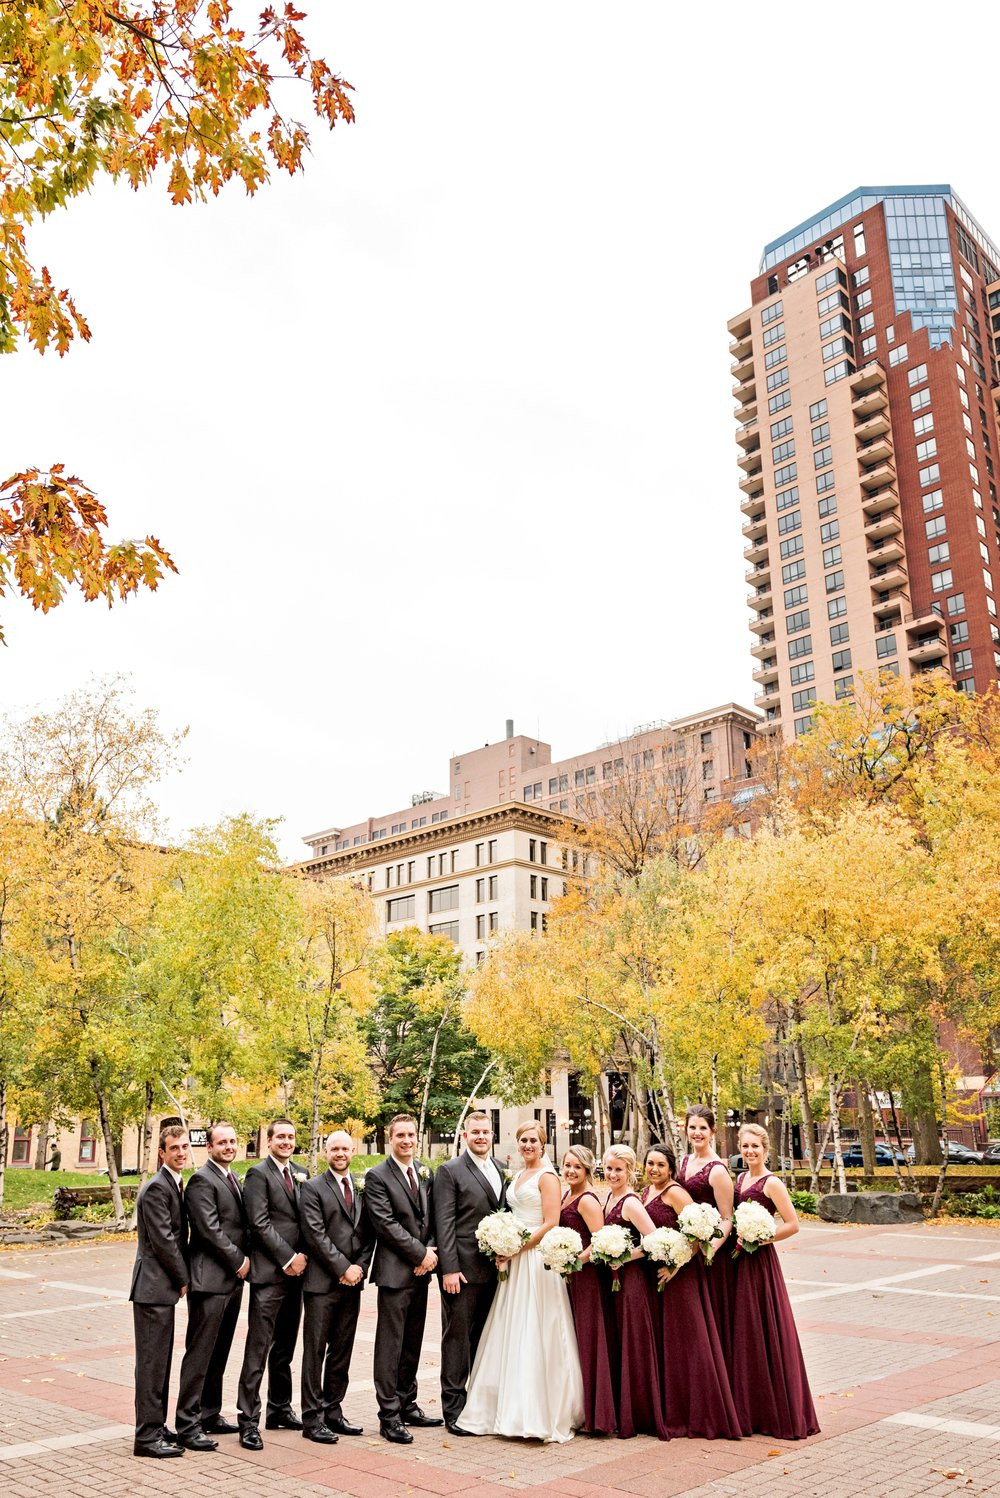 2018-Real-Wedding-Megan-Brenden-Rotella-Photography_0483.jpg